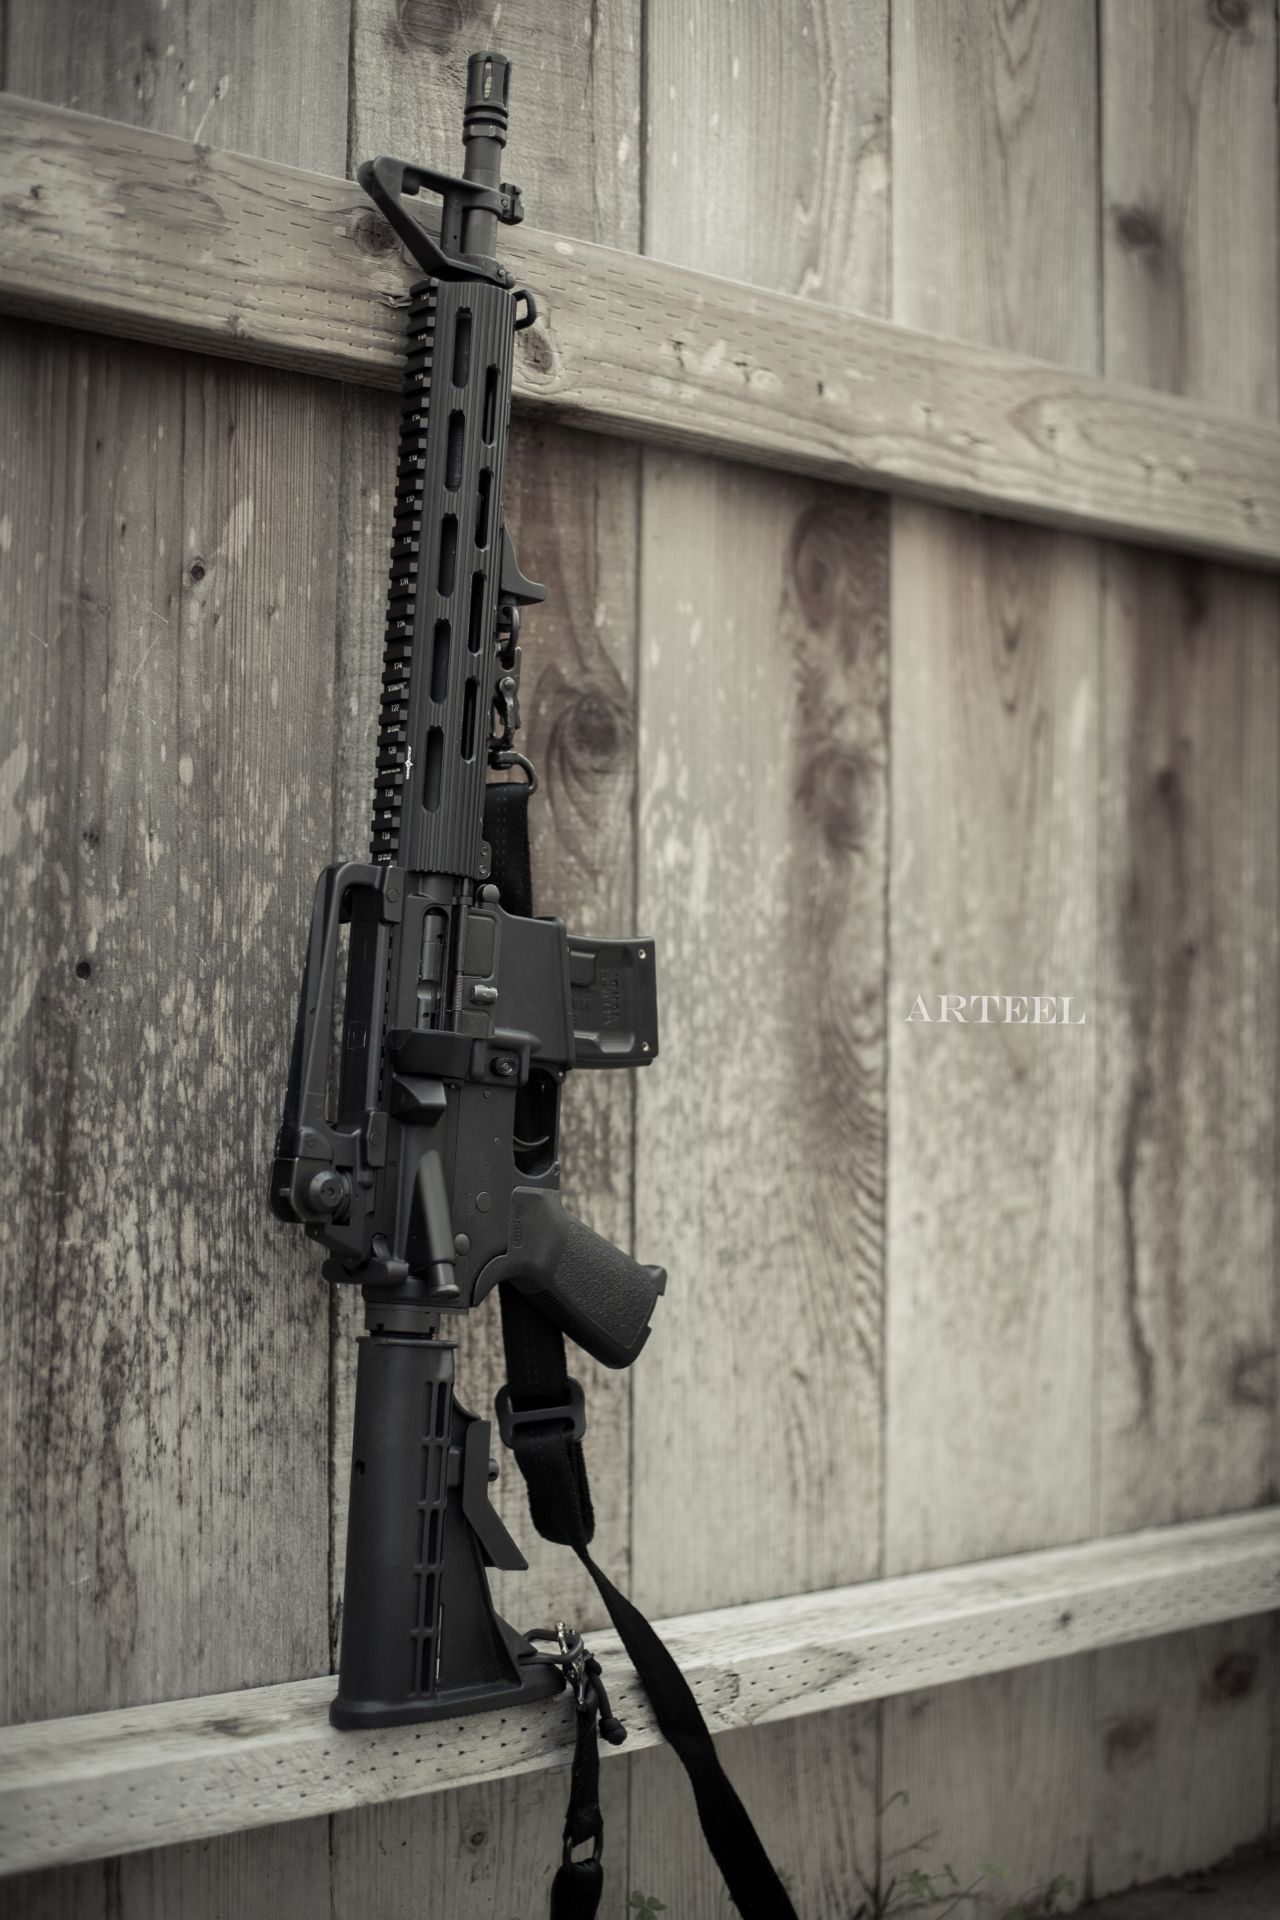 Military Blog / Weapons / Guns / Gunblr / Assault Rifles / Shotguns / Pistols / Revolvers / Sniper Rifles / Firearms Pictures Wallpapers - WeaponsLover Tumblr.Loading that magazine is a pain! Get your Magazine speedloader today! http://www.amazon.com/shops/raeind